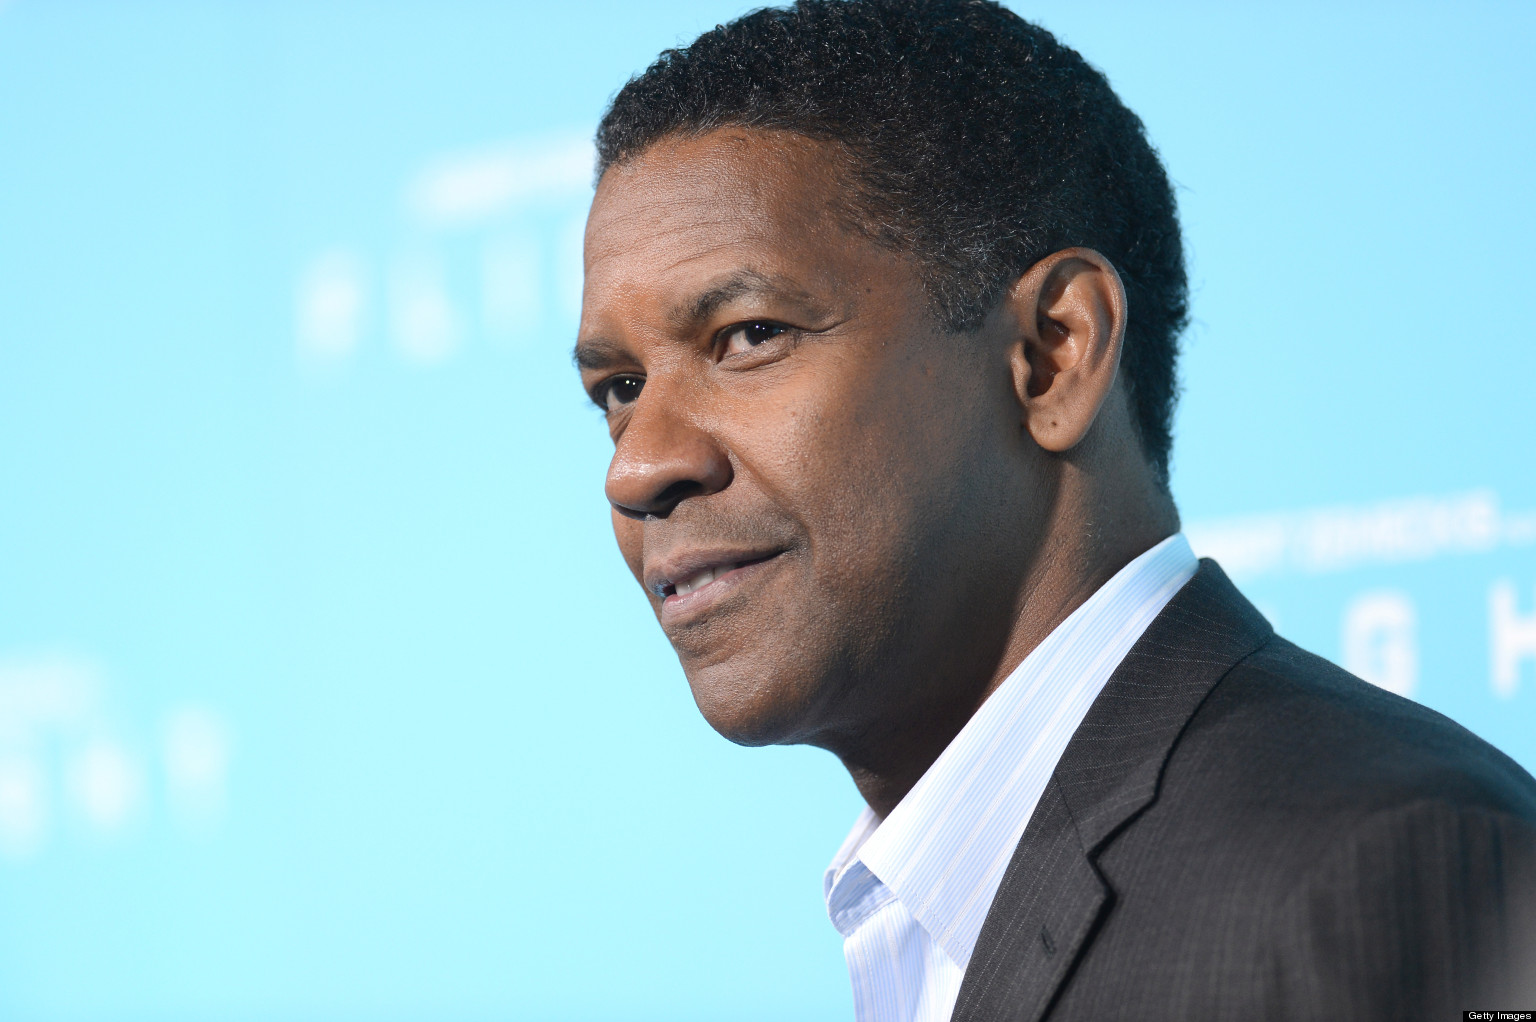 Denzel Washington Quotes Denzel Washington 'put Your Shoes Under The Bed So You Gotta' Get